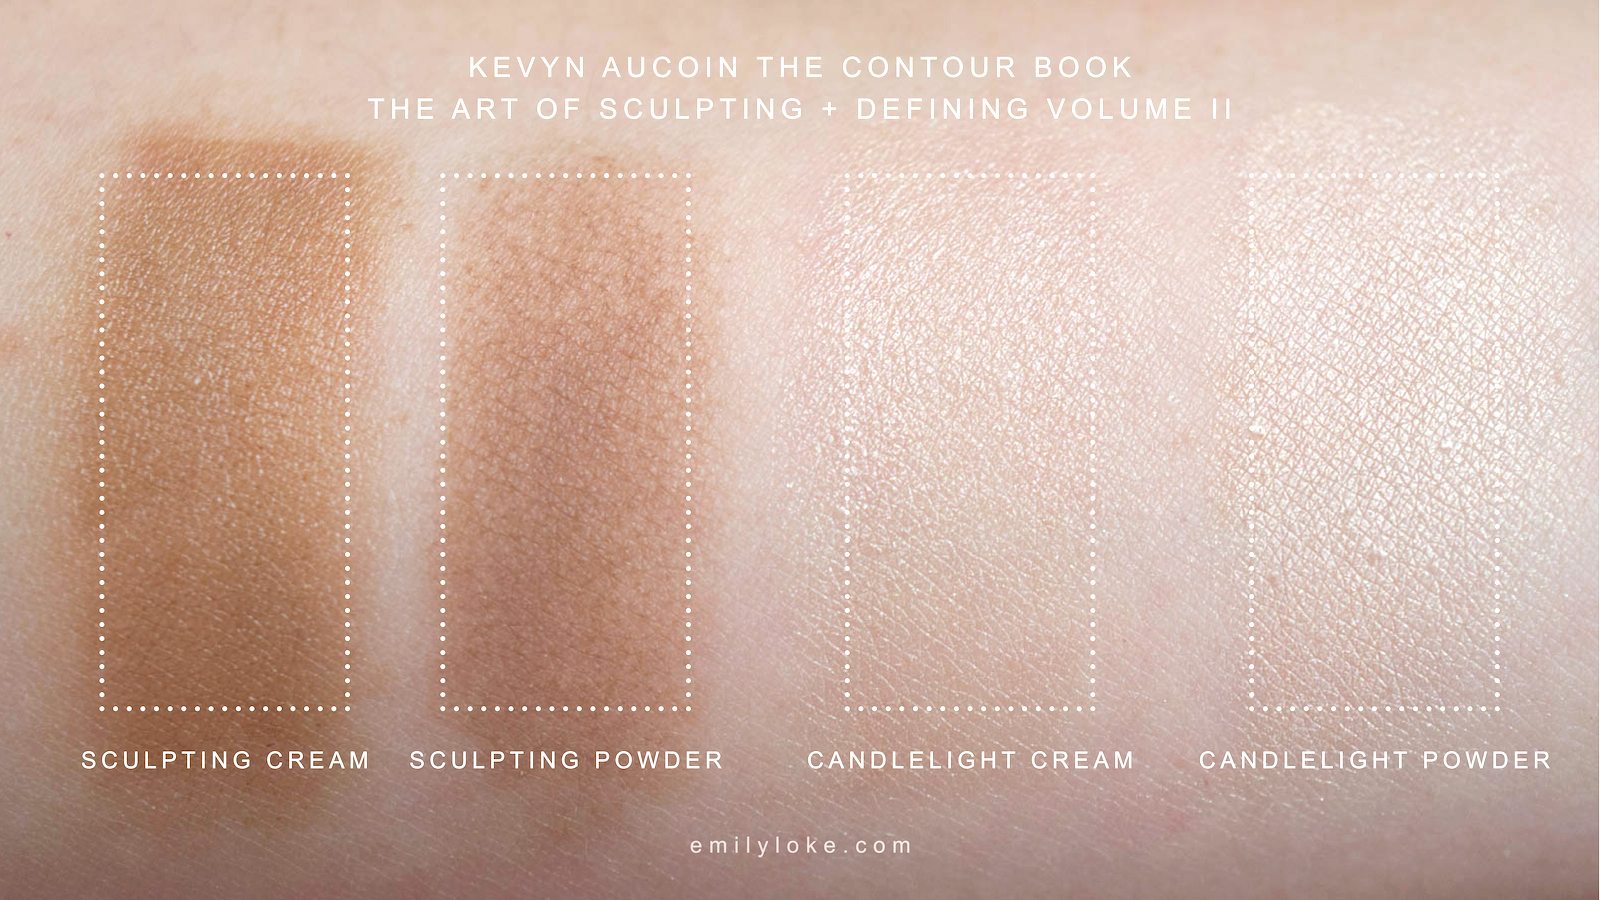 Kevyn Aucoin Contour Book Vol 2 Swatches 1